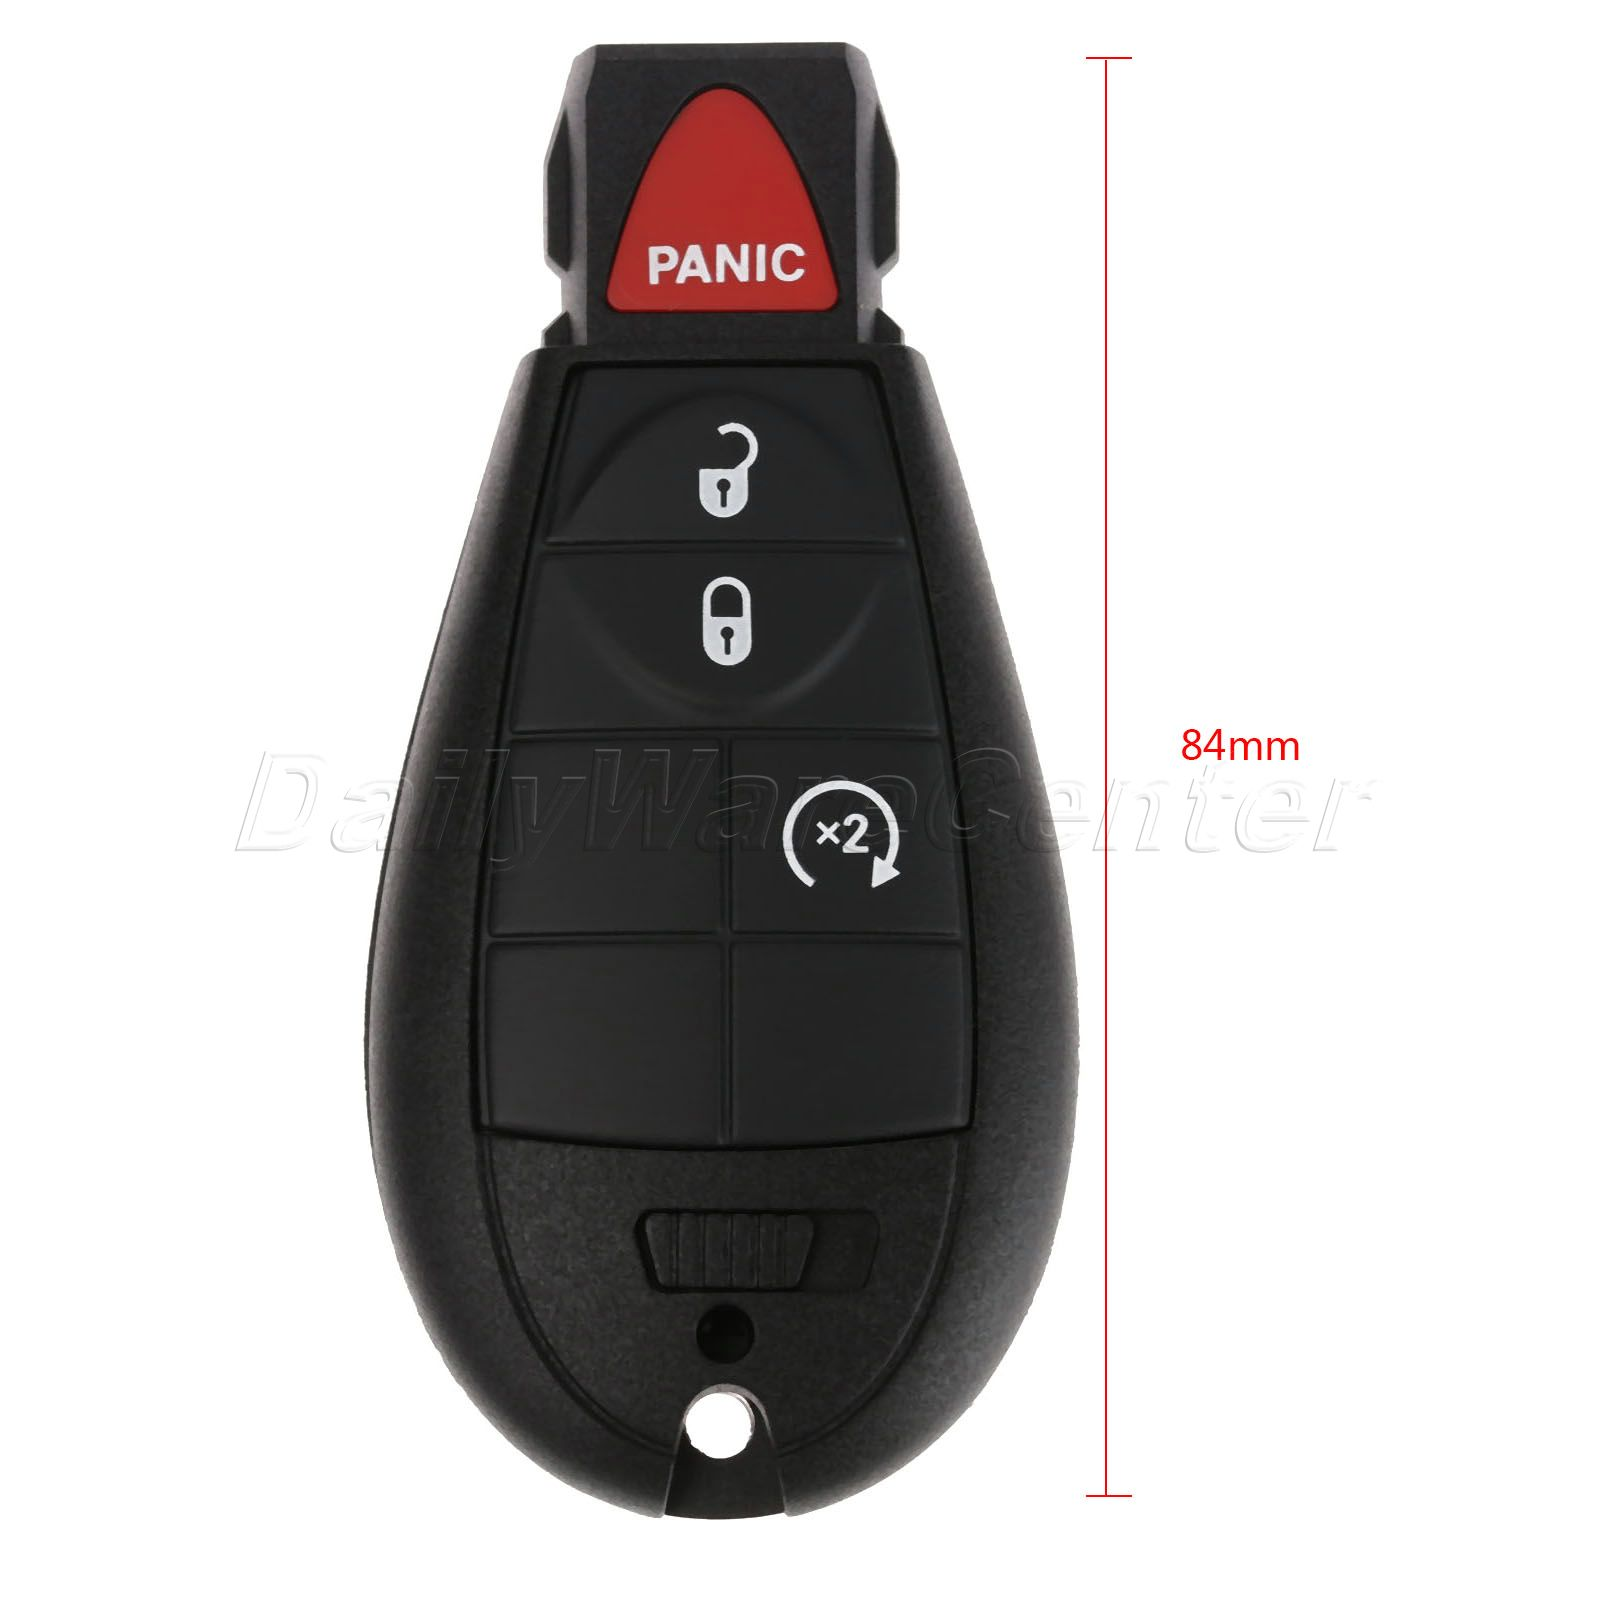 1x New Replacement Keyless Entry Remote Key Fob For Chrysler and Jeep Shell Case